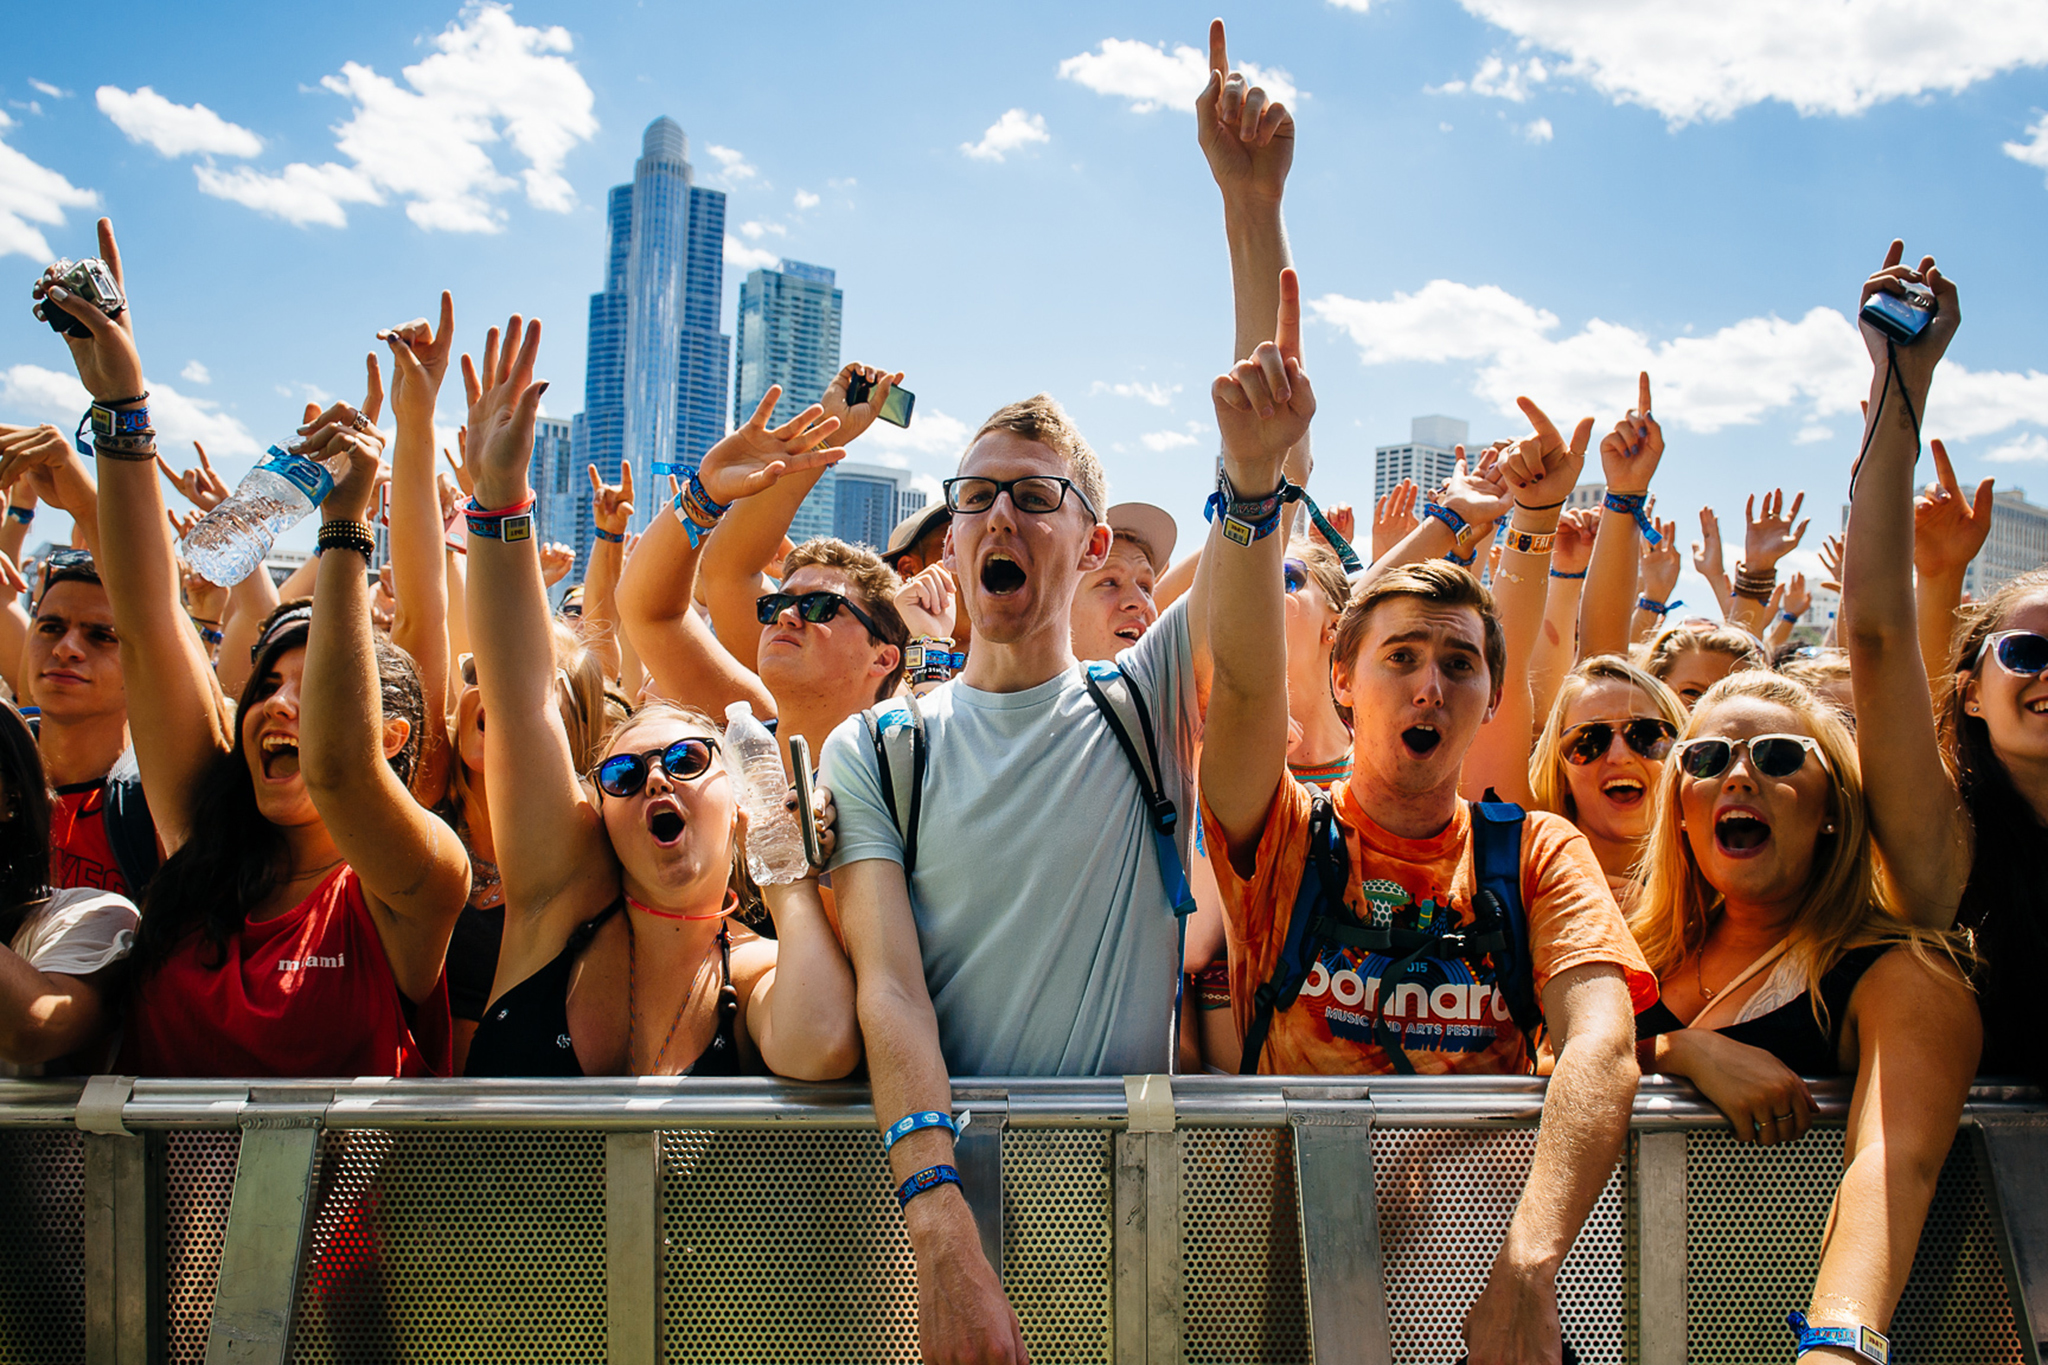 Our complete guide to Lollapalooza